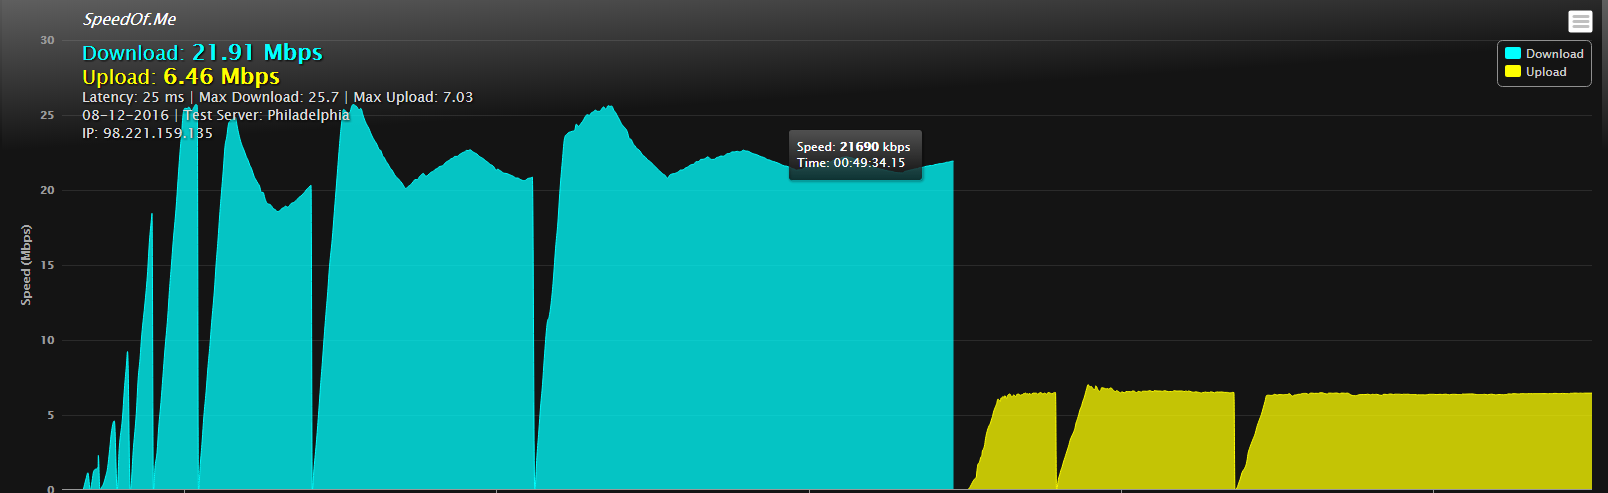 Strange Fluctuations in Download Speed - Networking - Linus